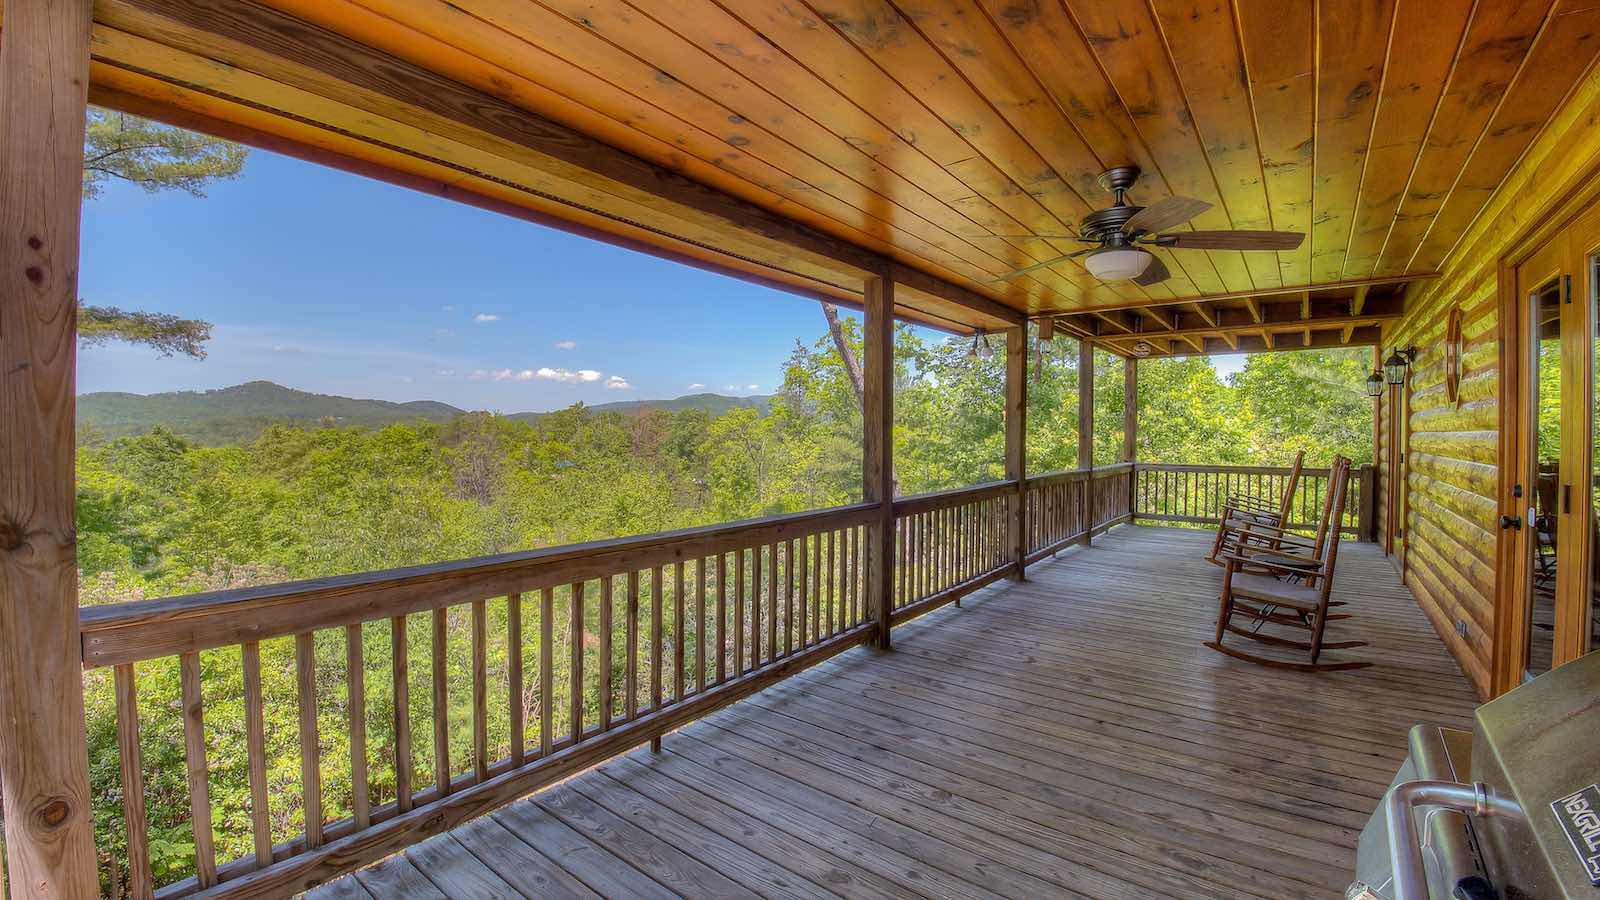 mountains mountain nc cabin cherokee lrg cabins and tags nantahala the smoky city bryson in rentals volunteer luxury